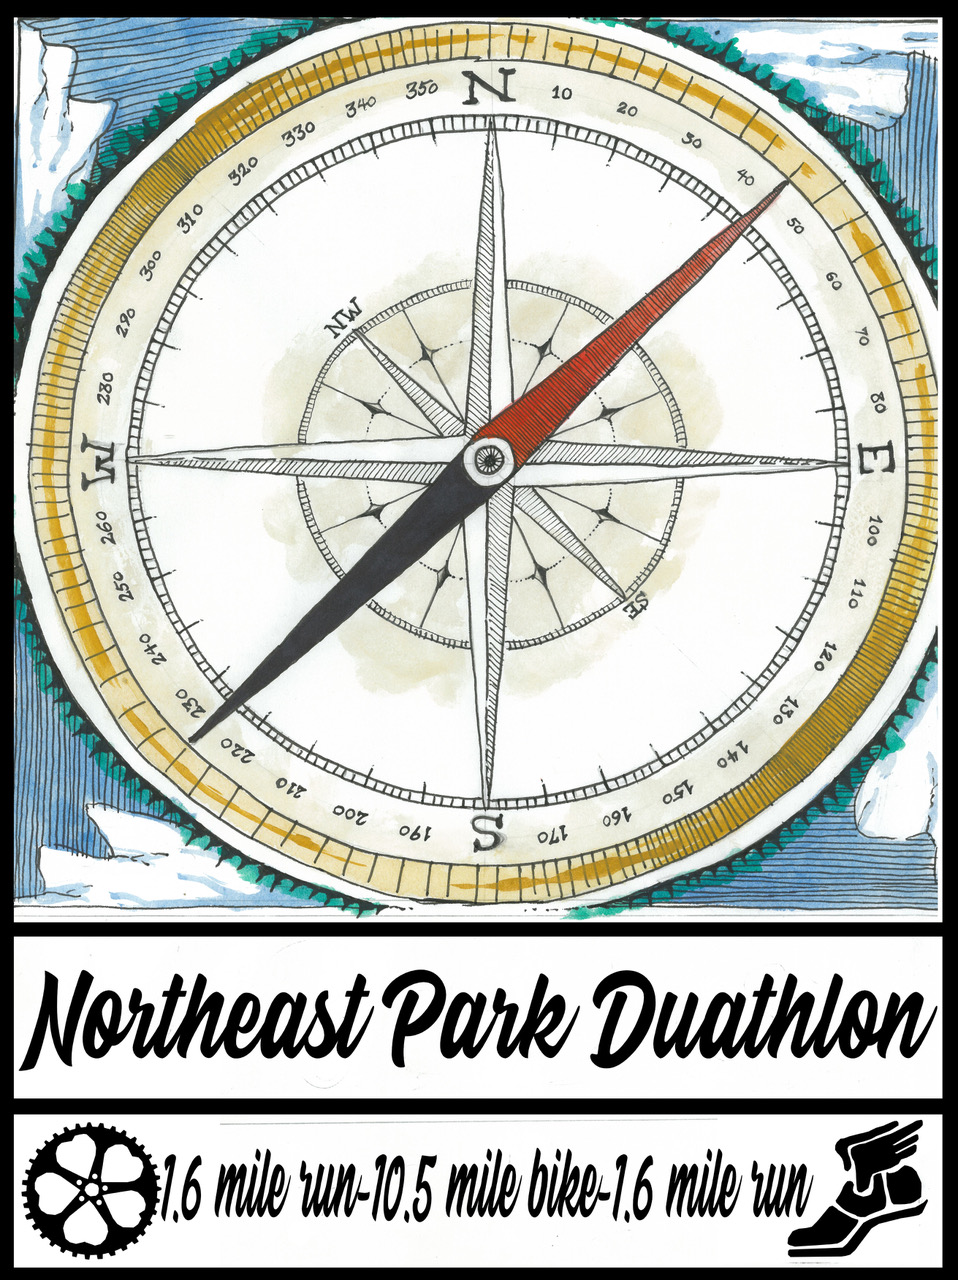 Northeast Park Duathlon logo on RaceRaves